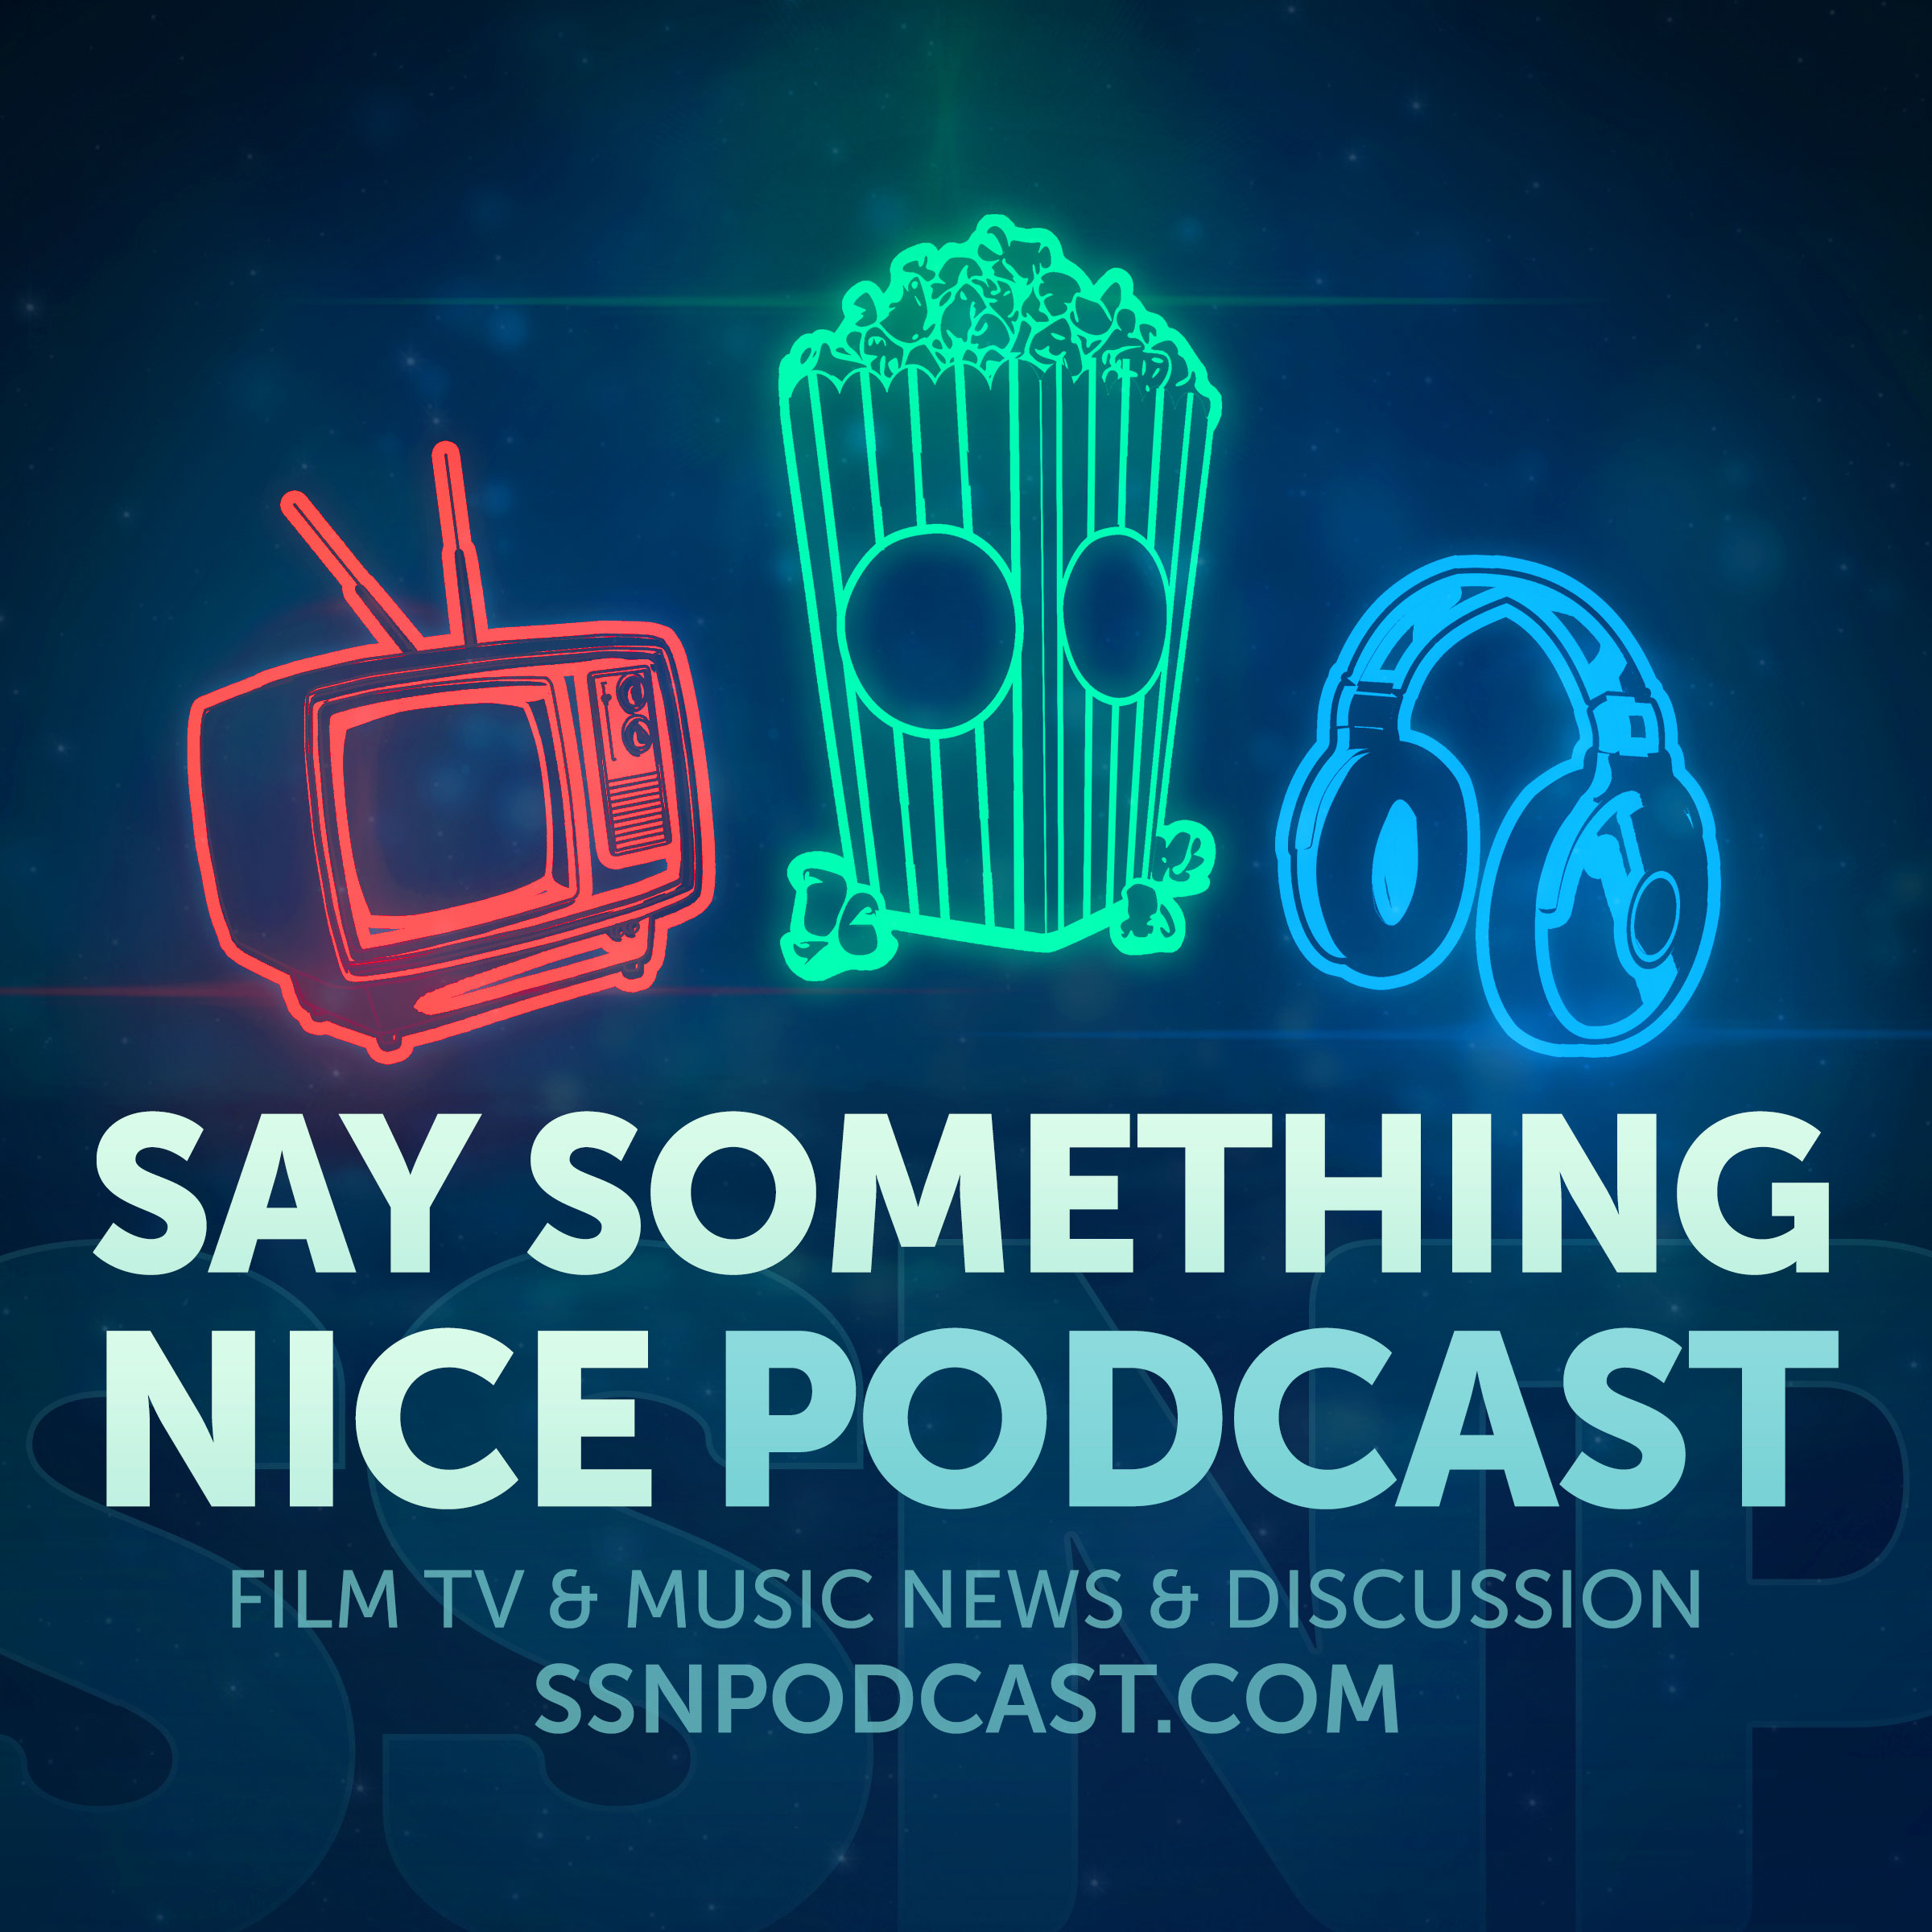 Say Something Nice Podcast - Film, TV, and Music News & Discussion